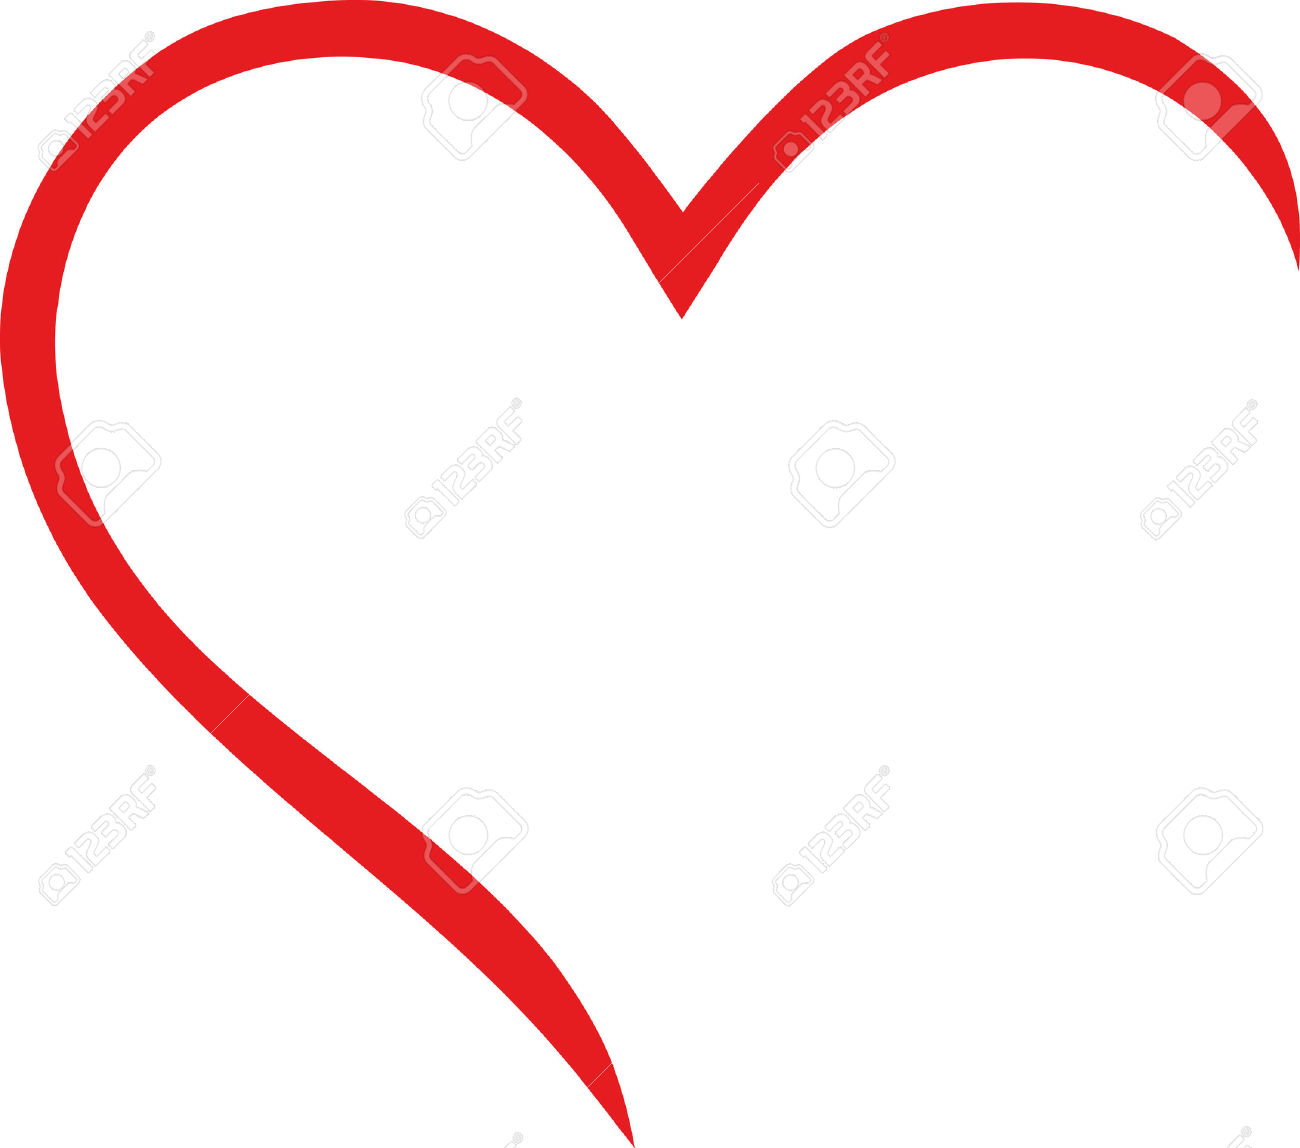 Half Heart Outline Royalty Free Cliparts, Vectors, And Stock.